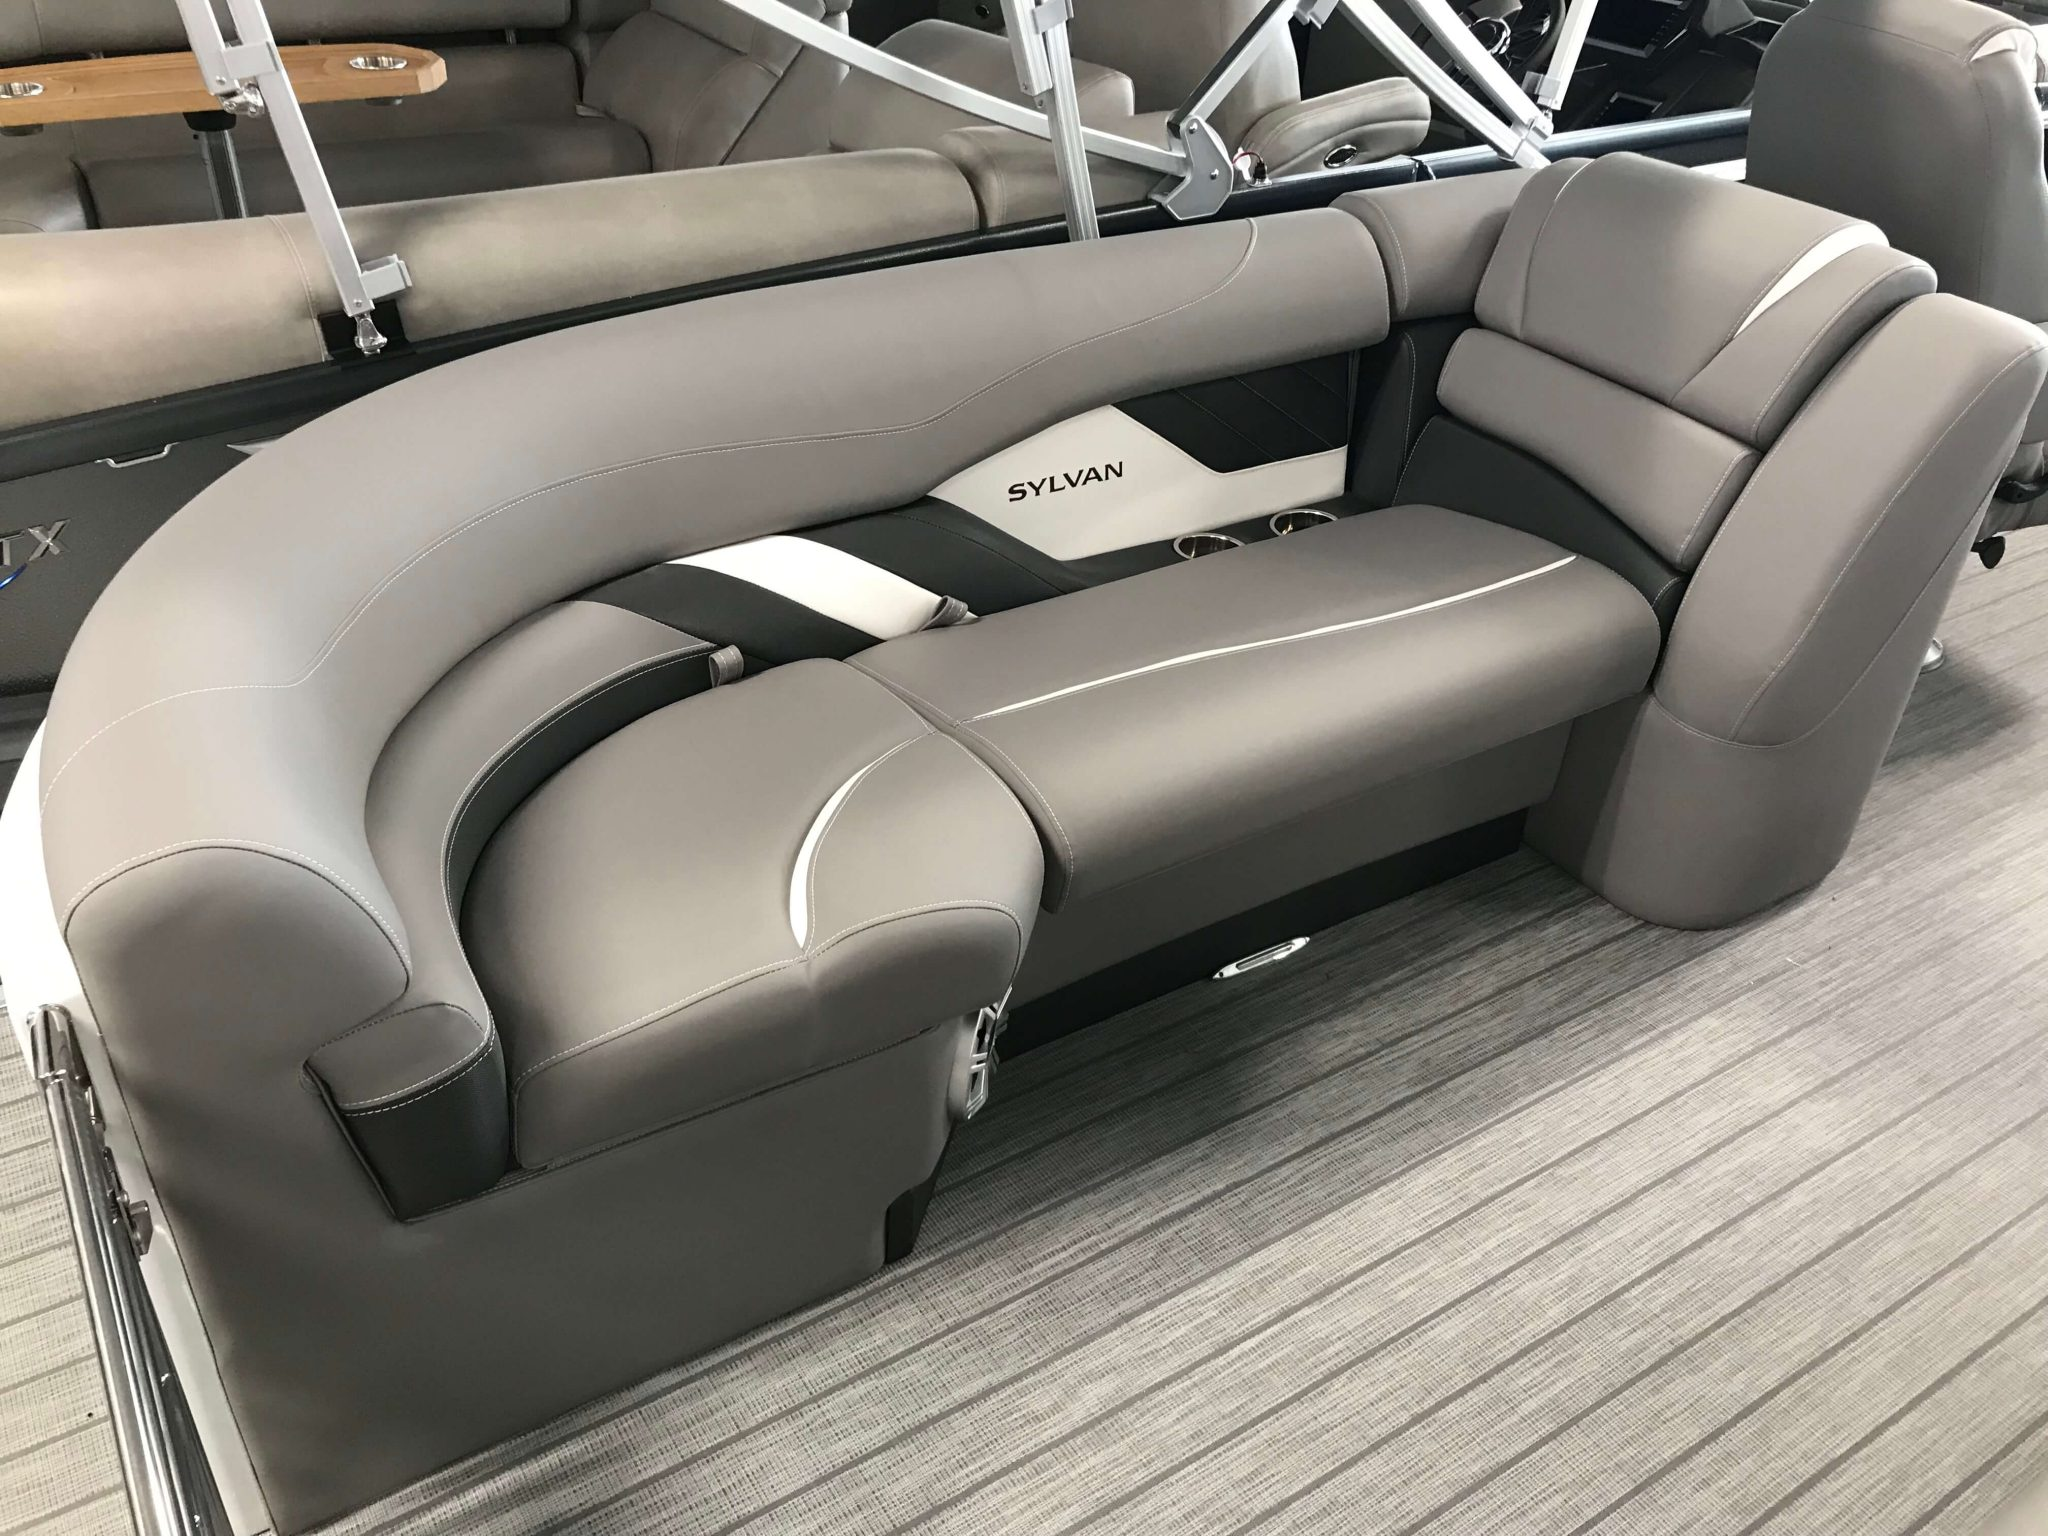 2019 Sylvan S3 LZ Tritoon Interior Seating 1